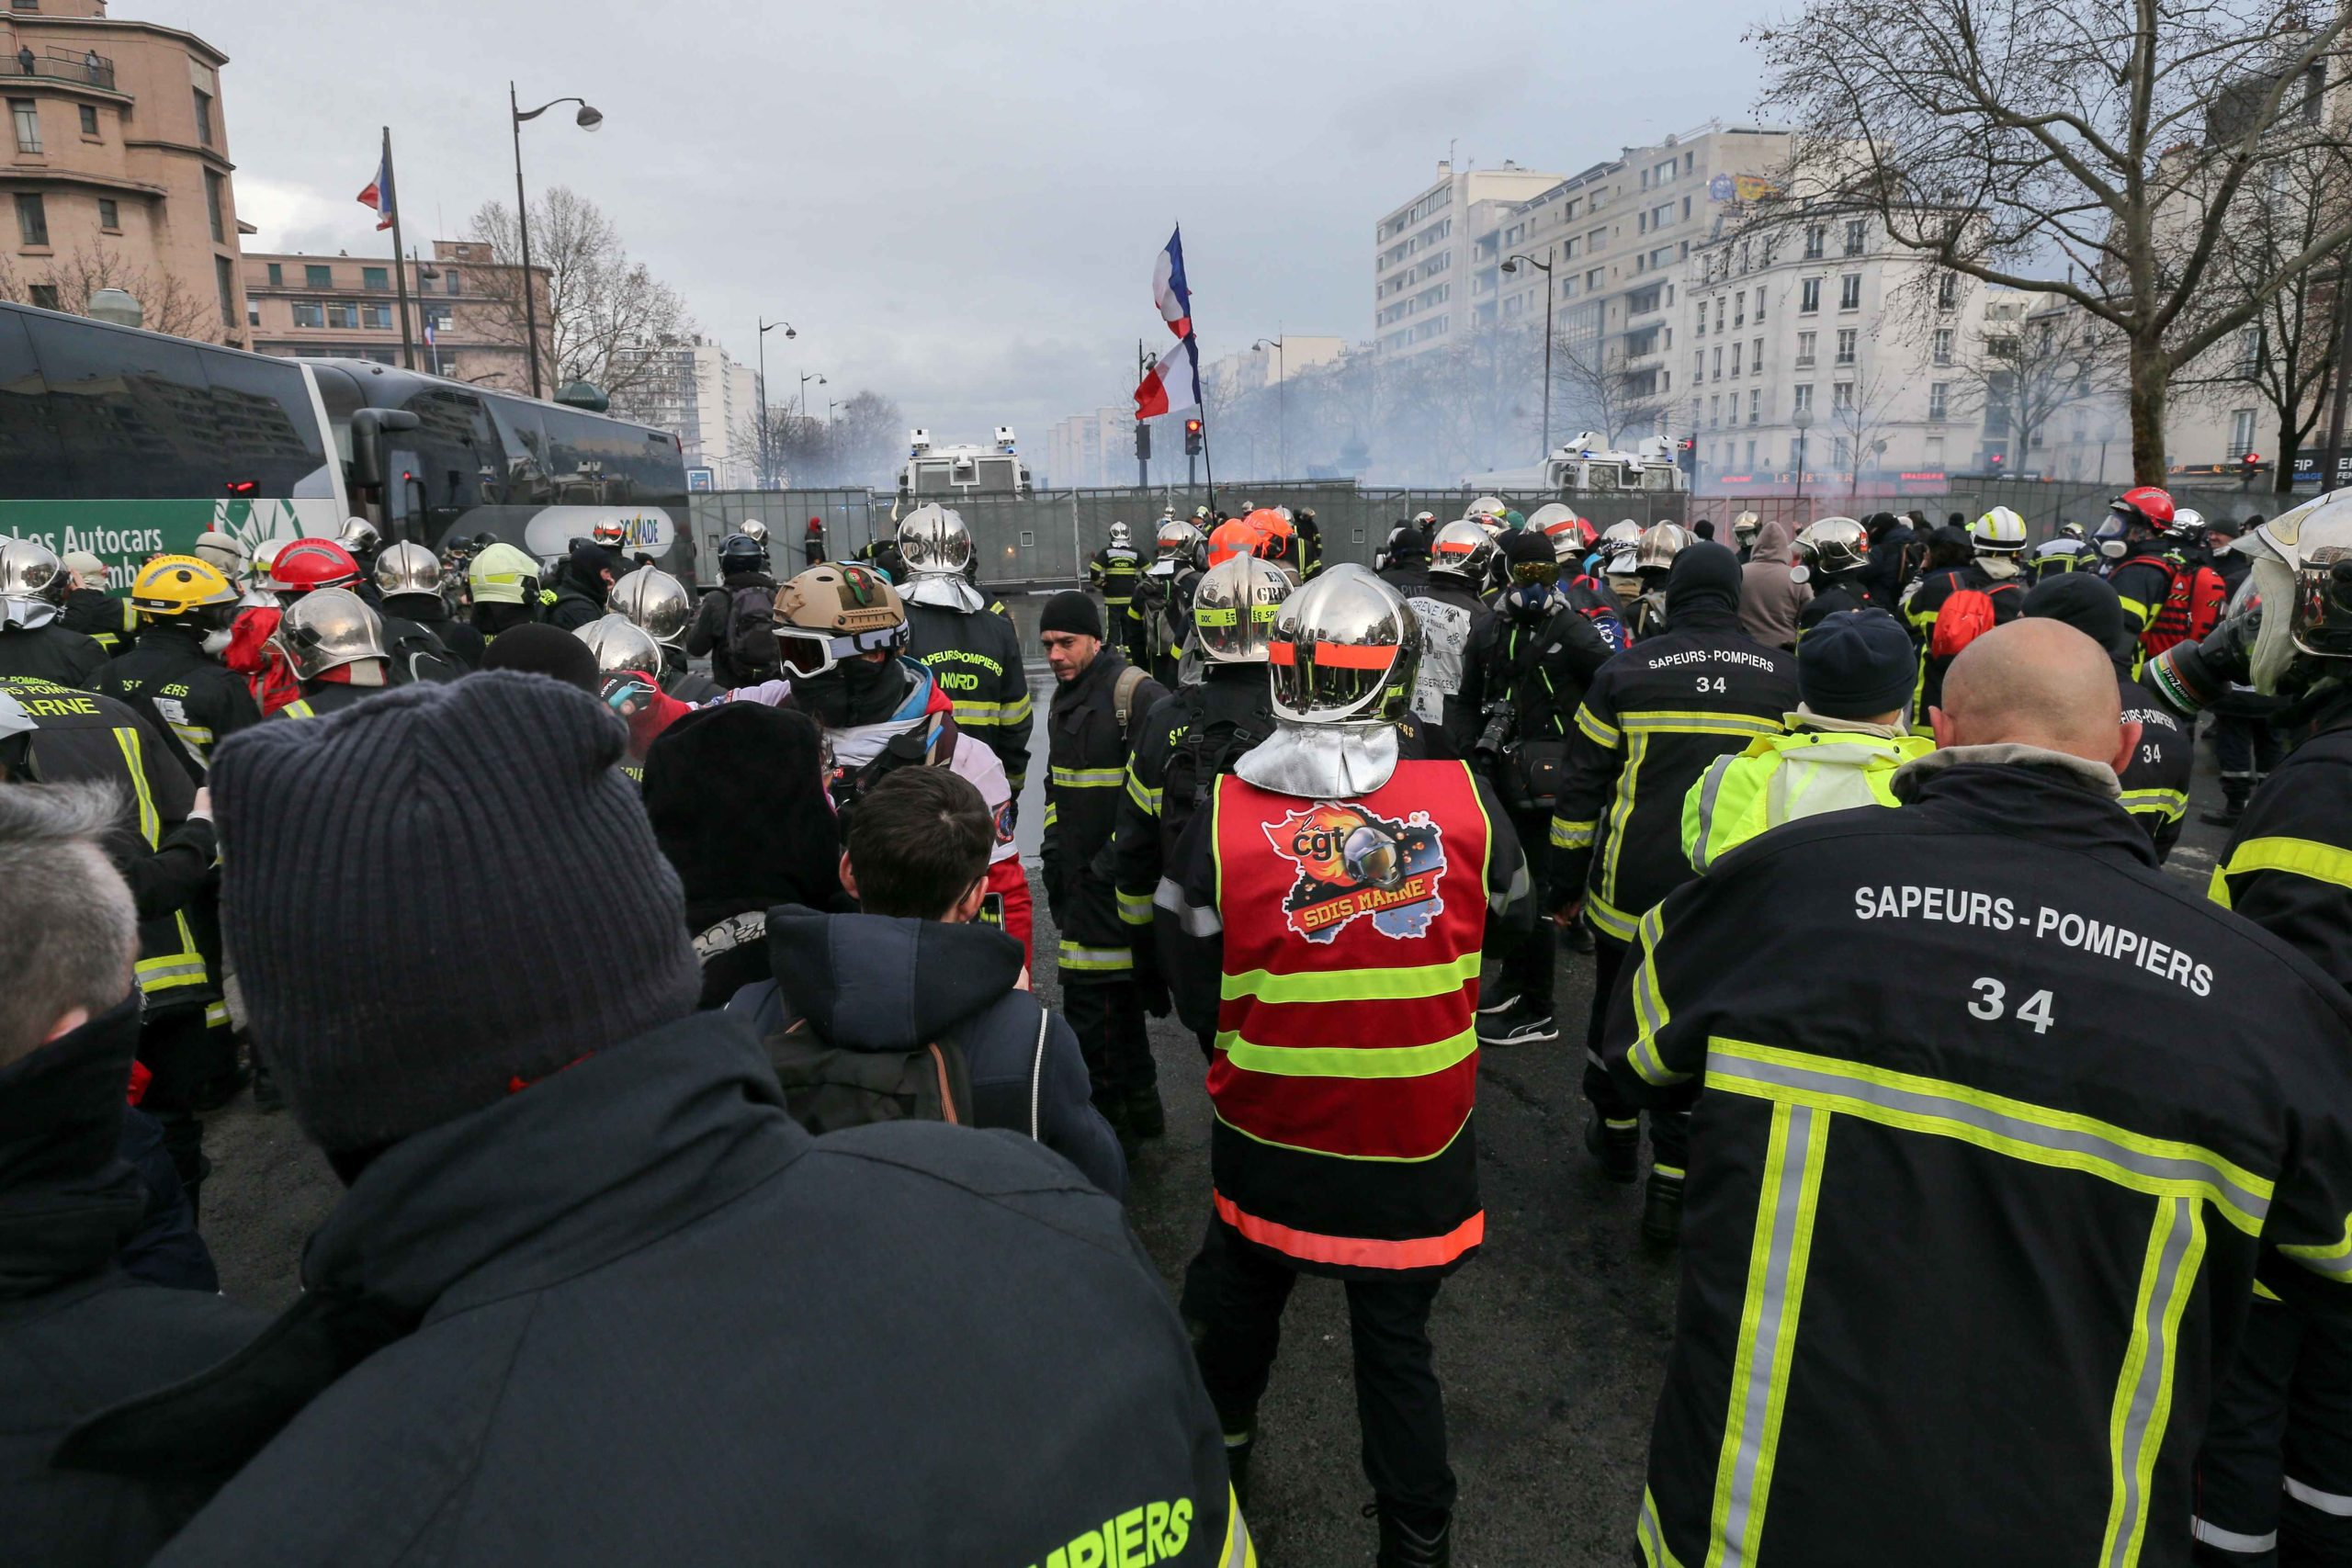 FirefighterS stands in front of a riot barricade and water canons during a demonstration to protest against French government's plan to overhaul the country's retirement system in Paris, on January 28, 2020.